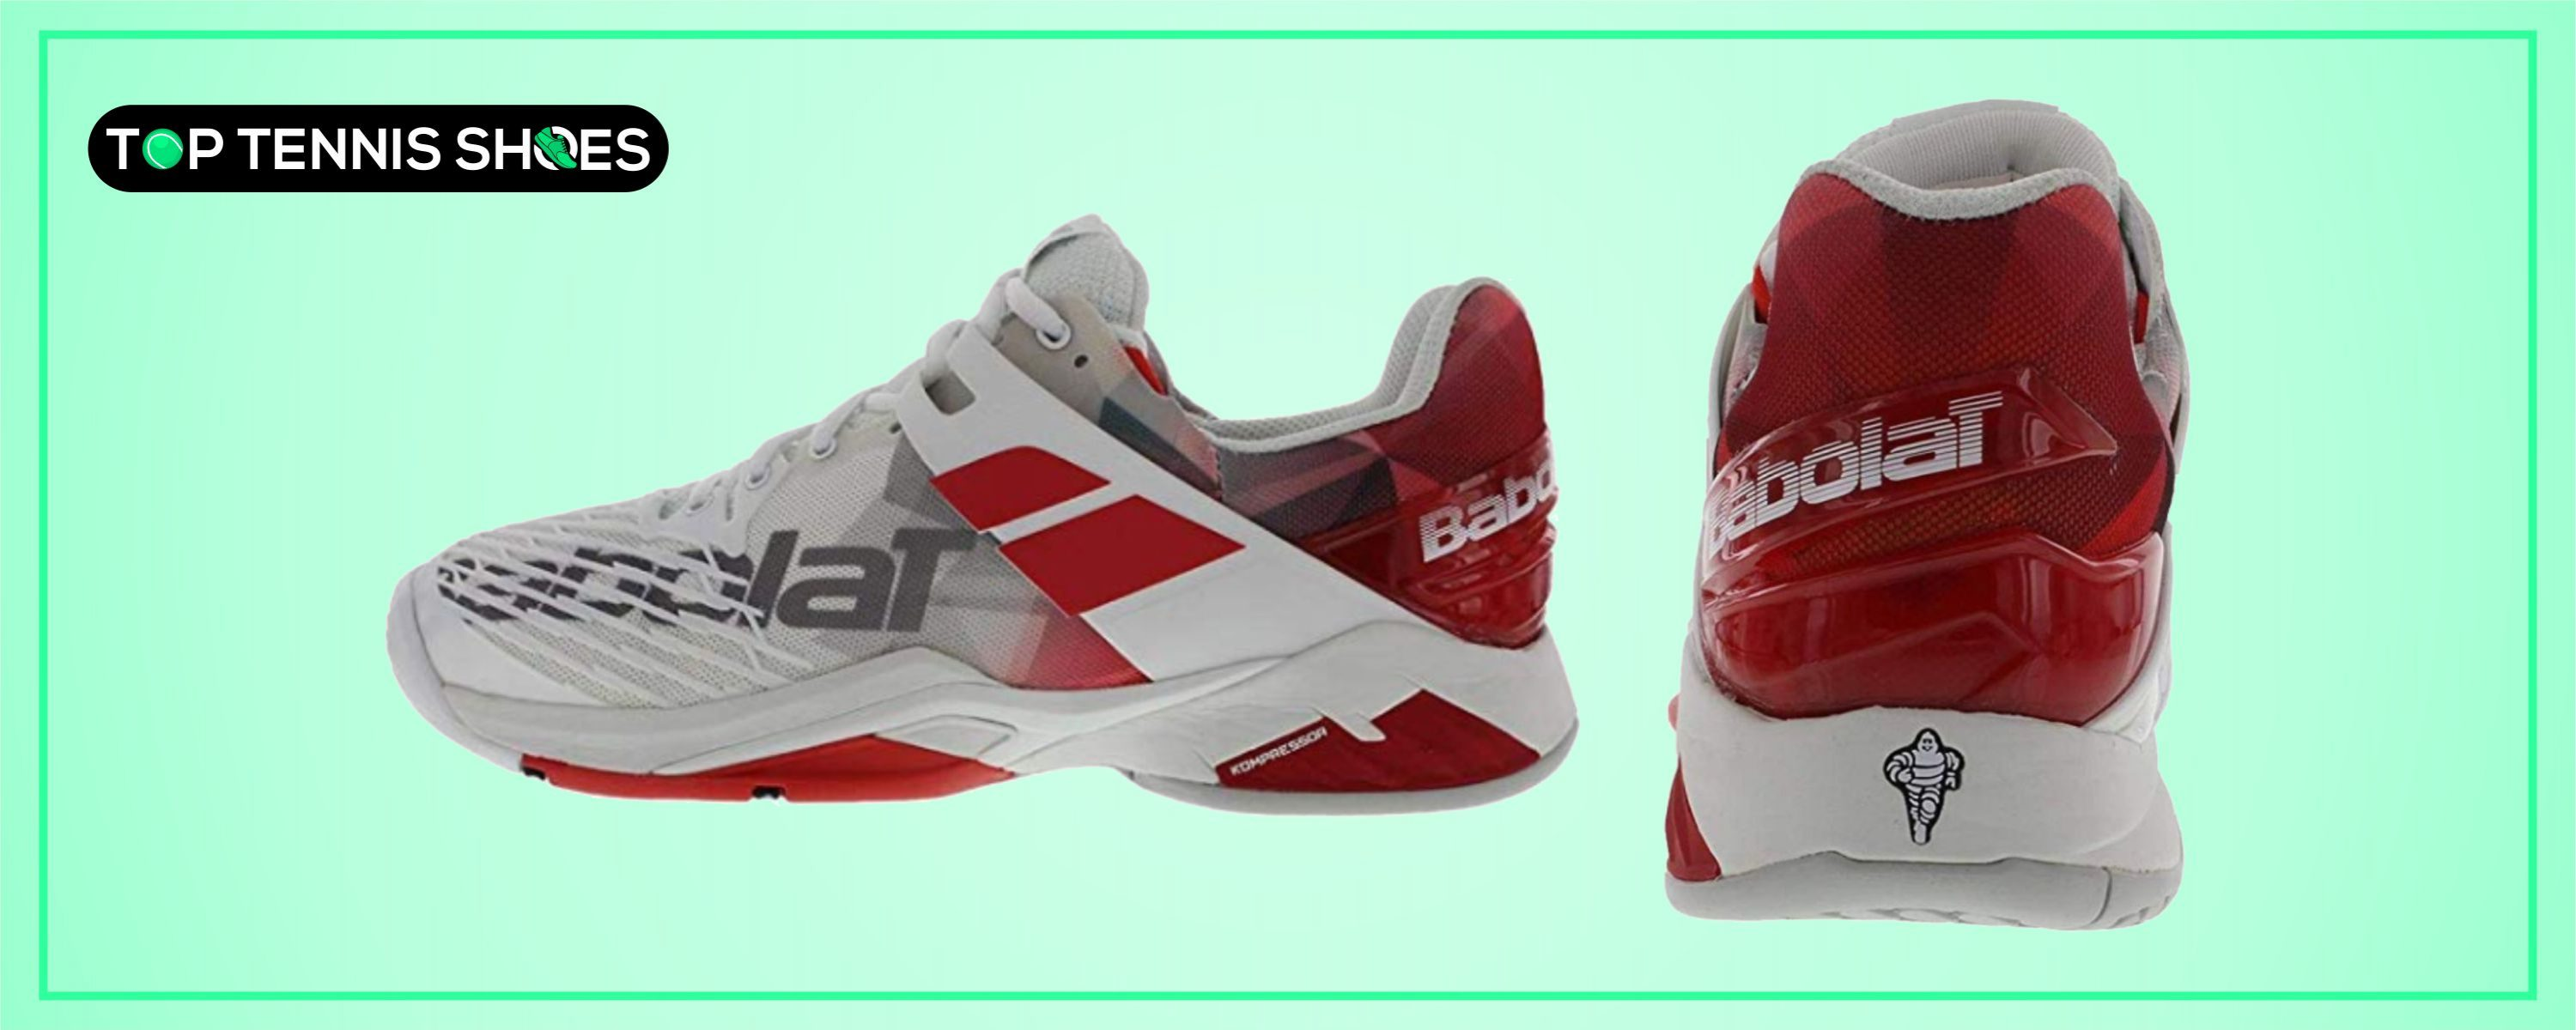 Babolat Tennis Shoes for Sliding